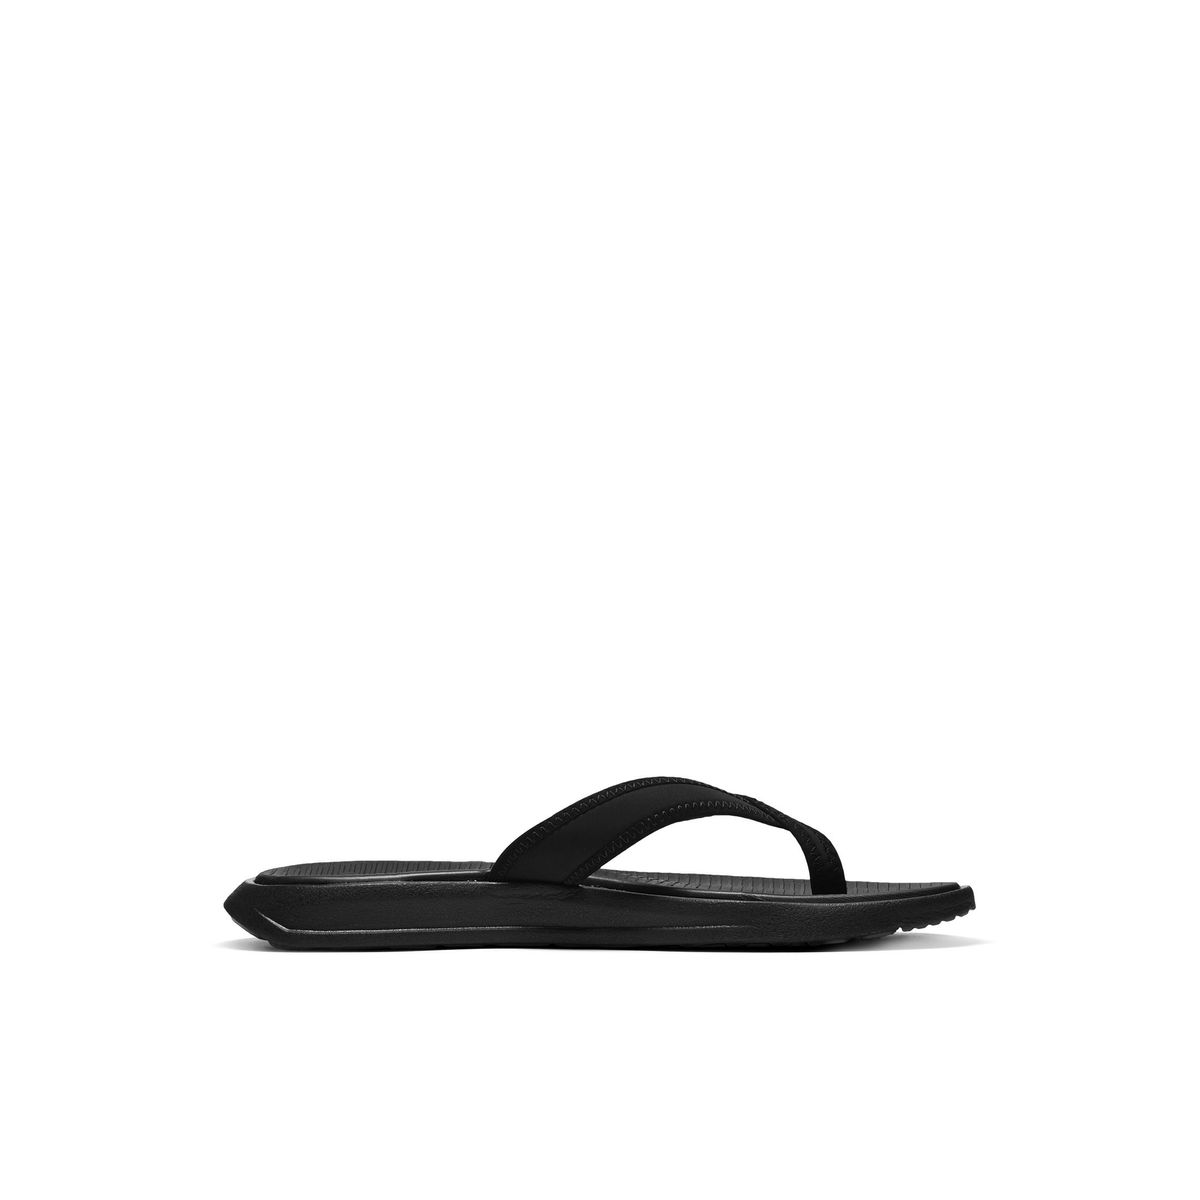 6234dd0a993 Ultra Celso Thong Black Multi Women s Sandals